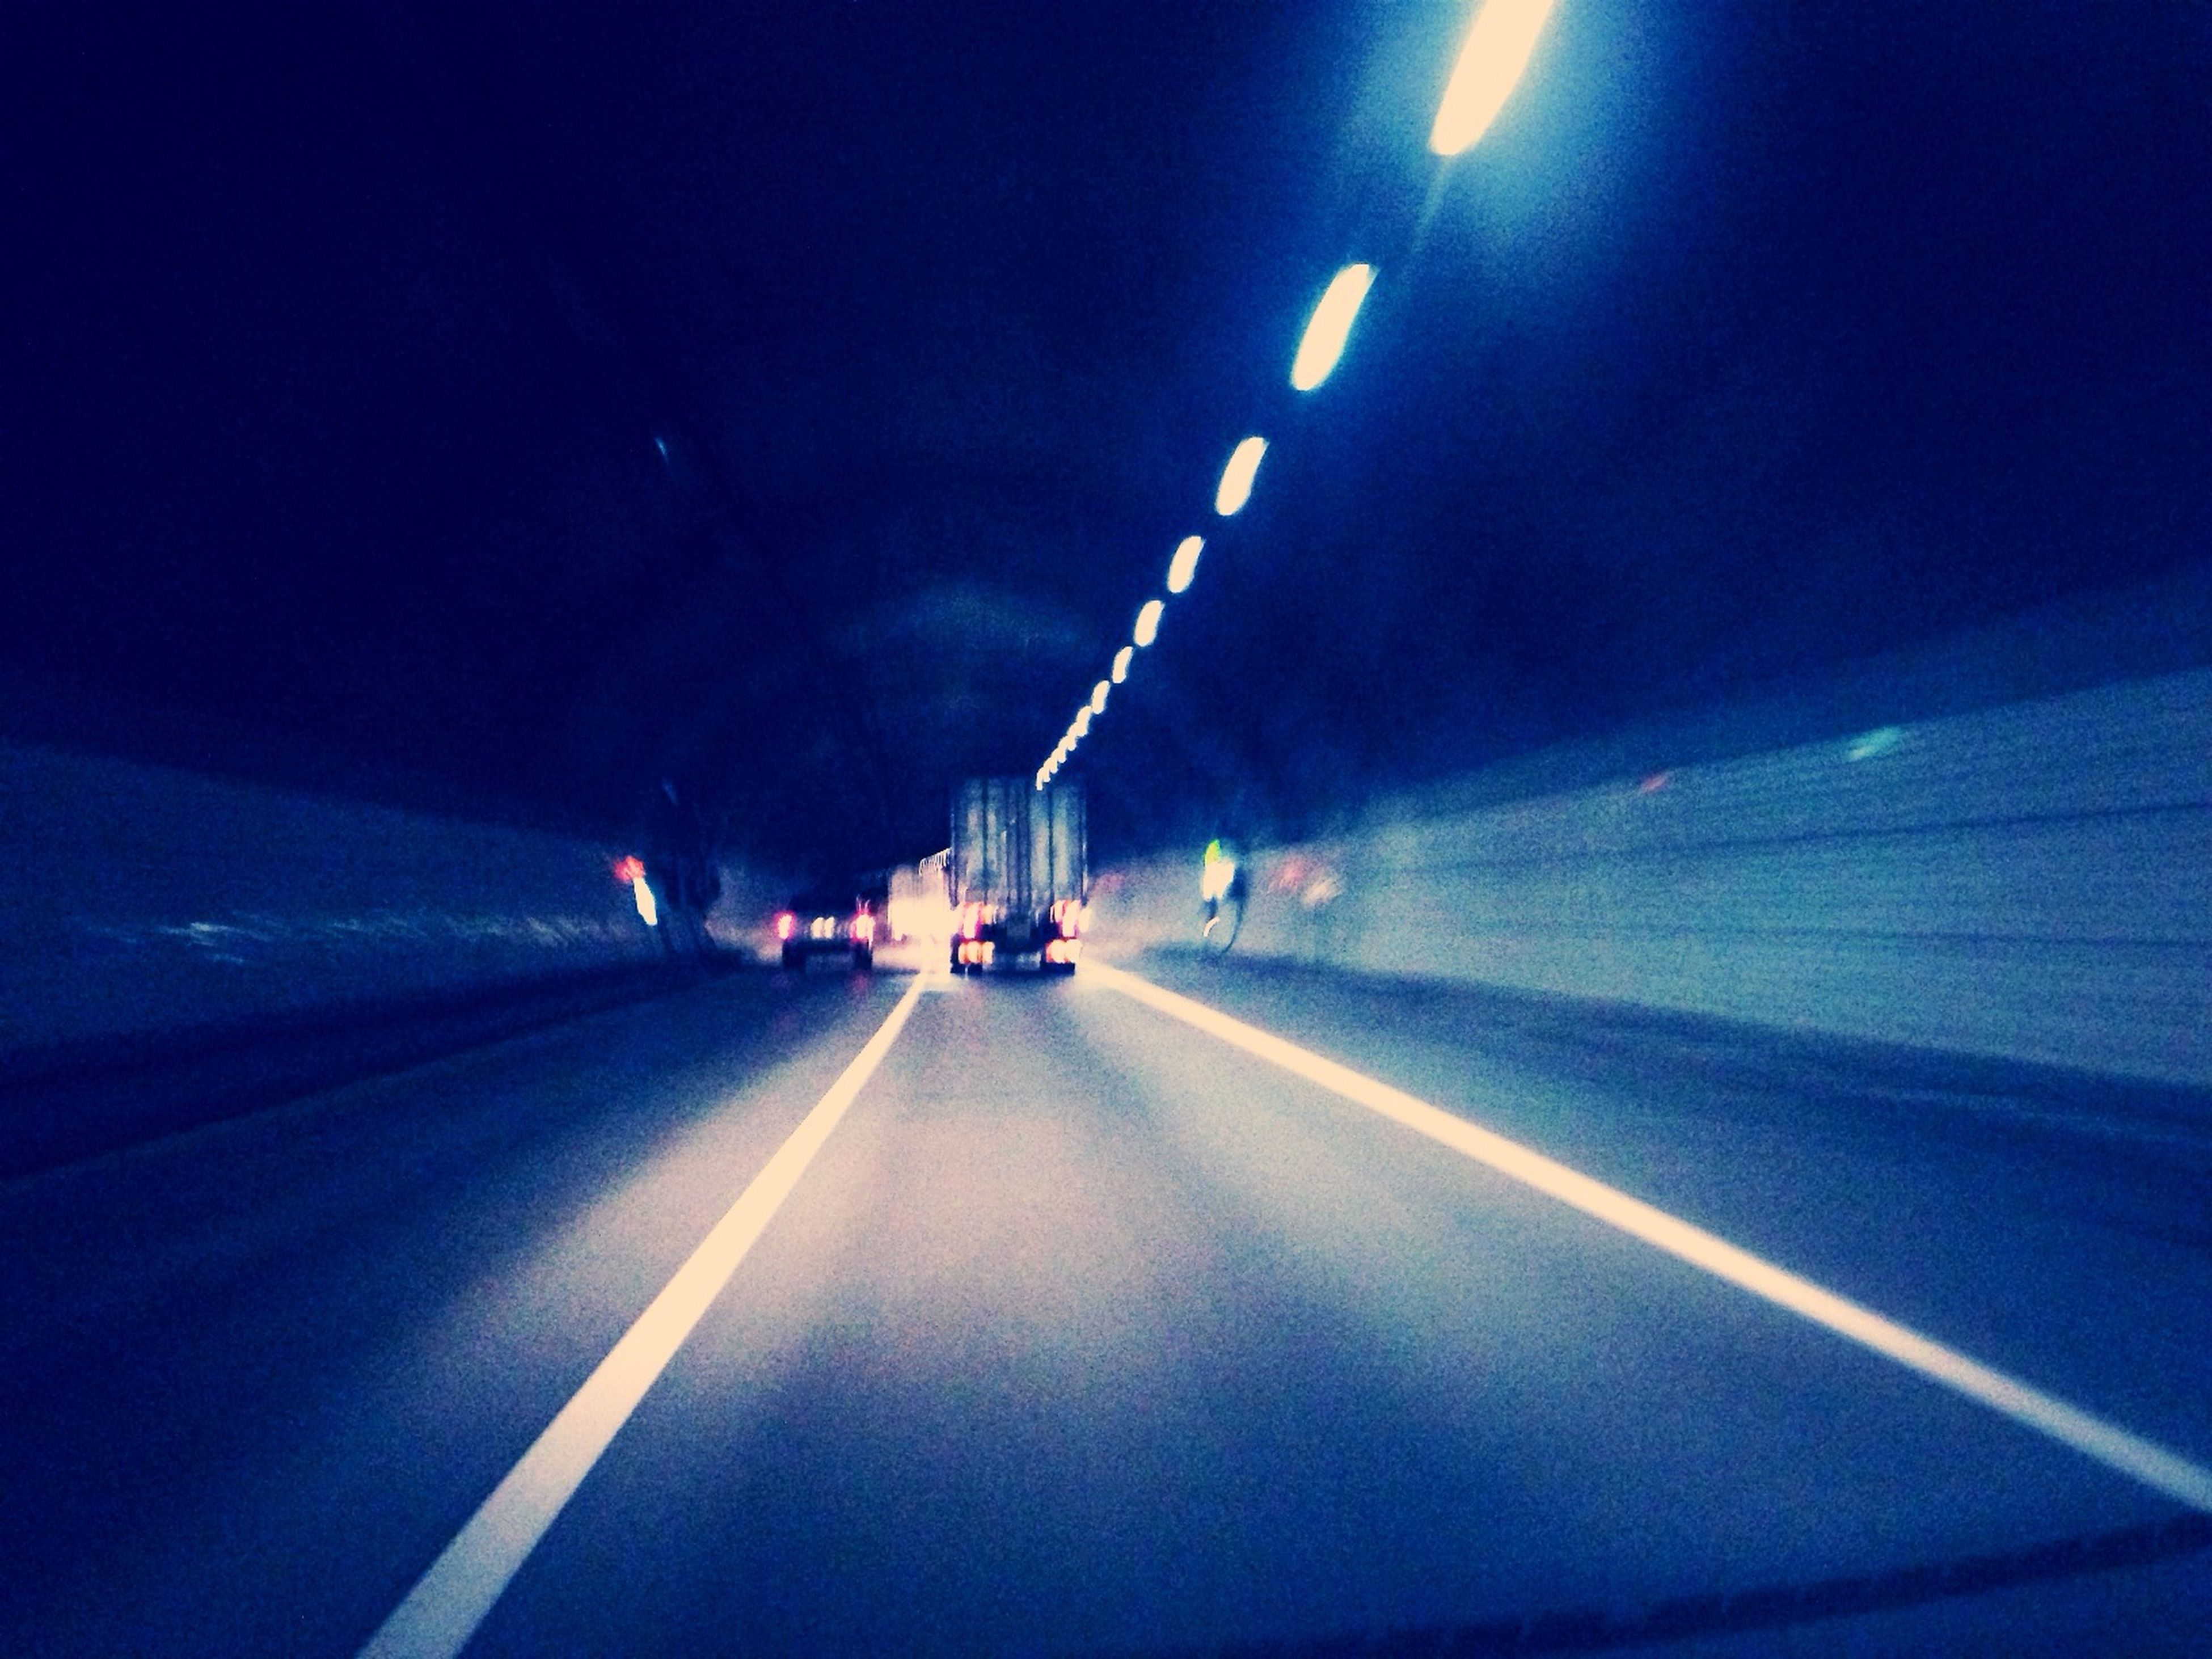 transportation, illuminated, the way forward, diminishing perspective, mode of transport, road, road marking, vanishing point, night, travel, on the move, lighting equipment, blue, indoors, tunnel, land vehicle, car, speed, journey, highway